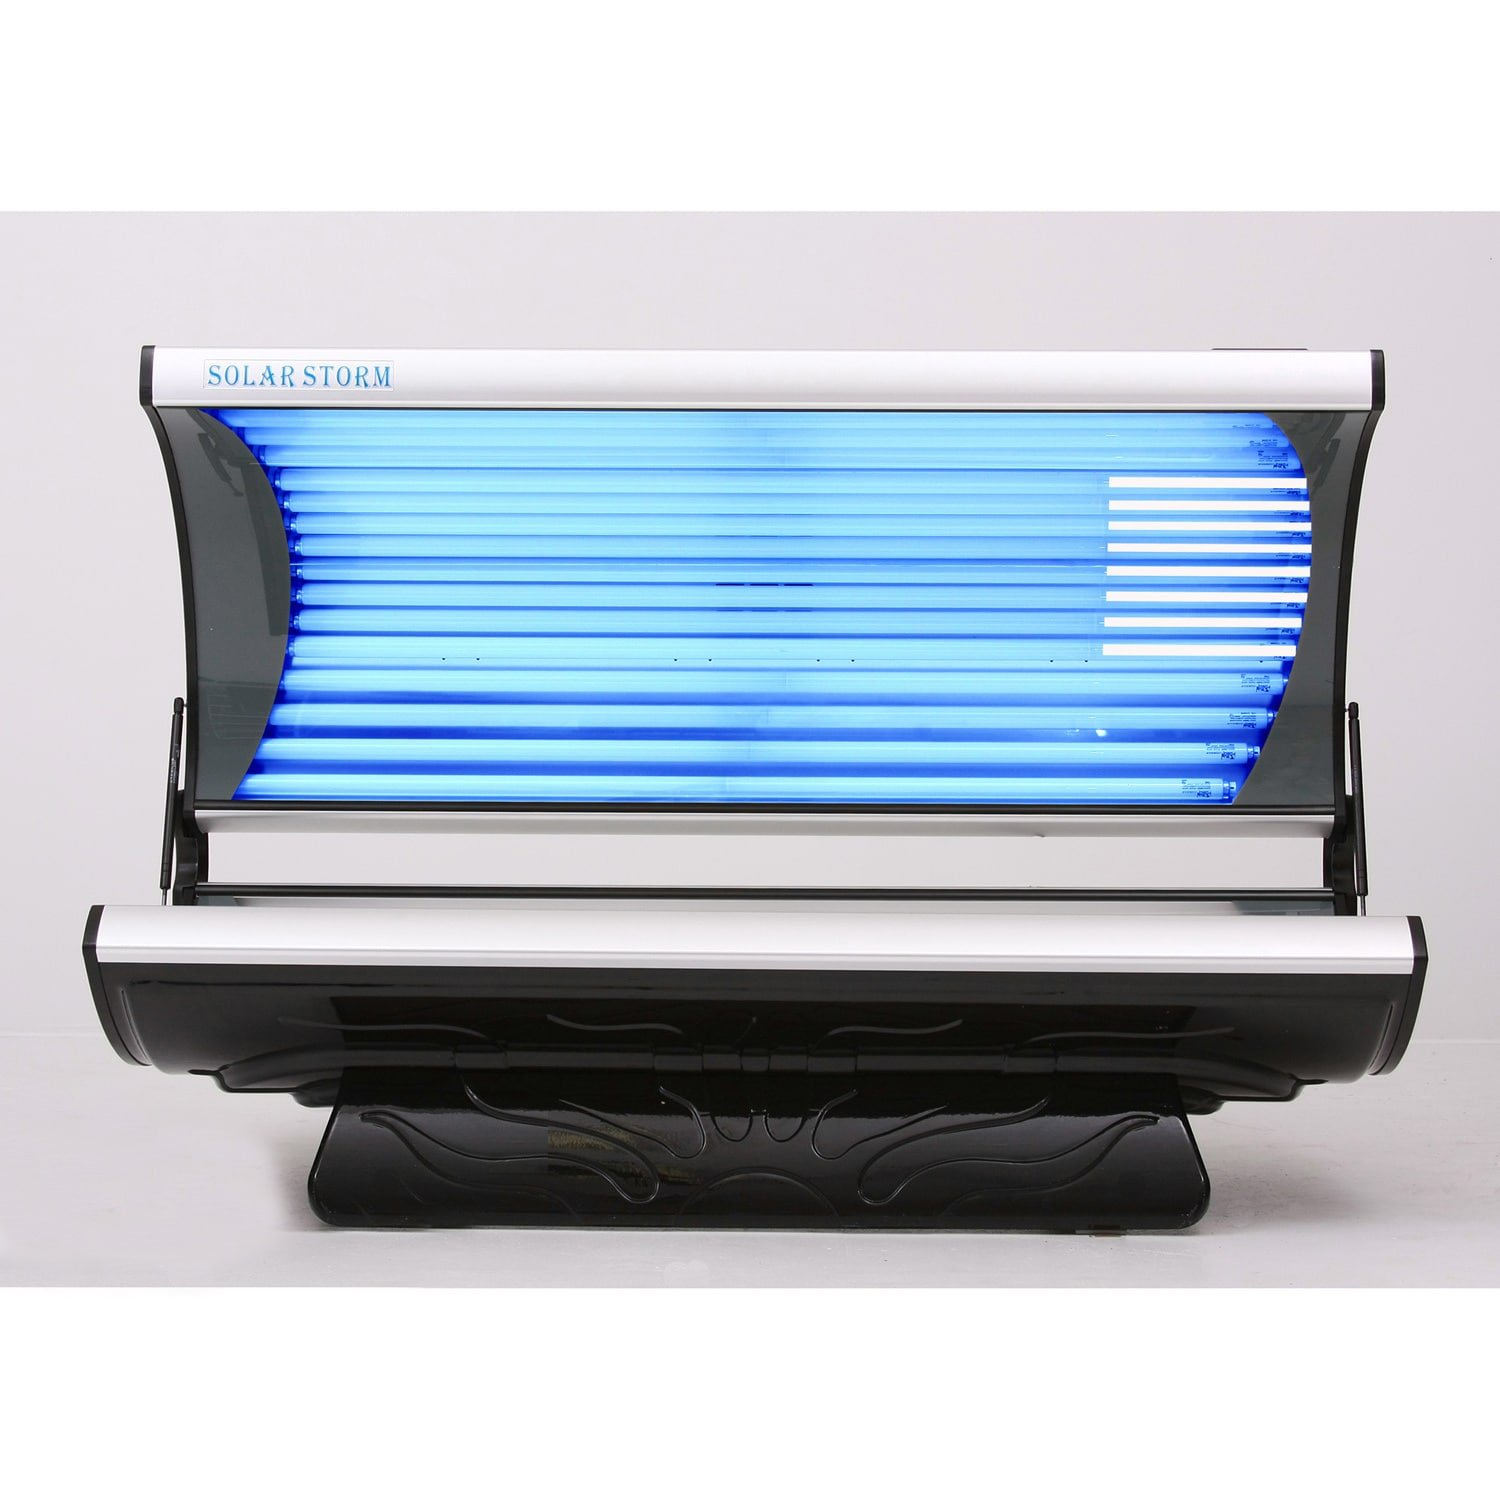 Solar Storm 24r 220v Tanning Bed With Face Lamps Wiring Industrial Scientific